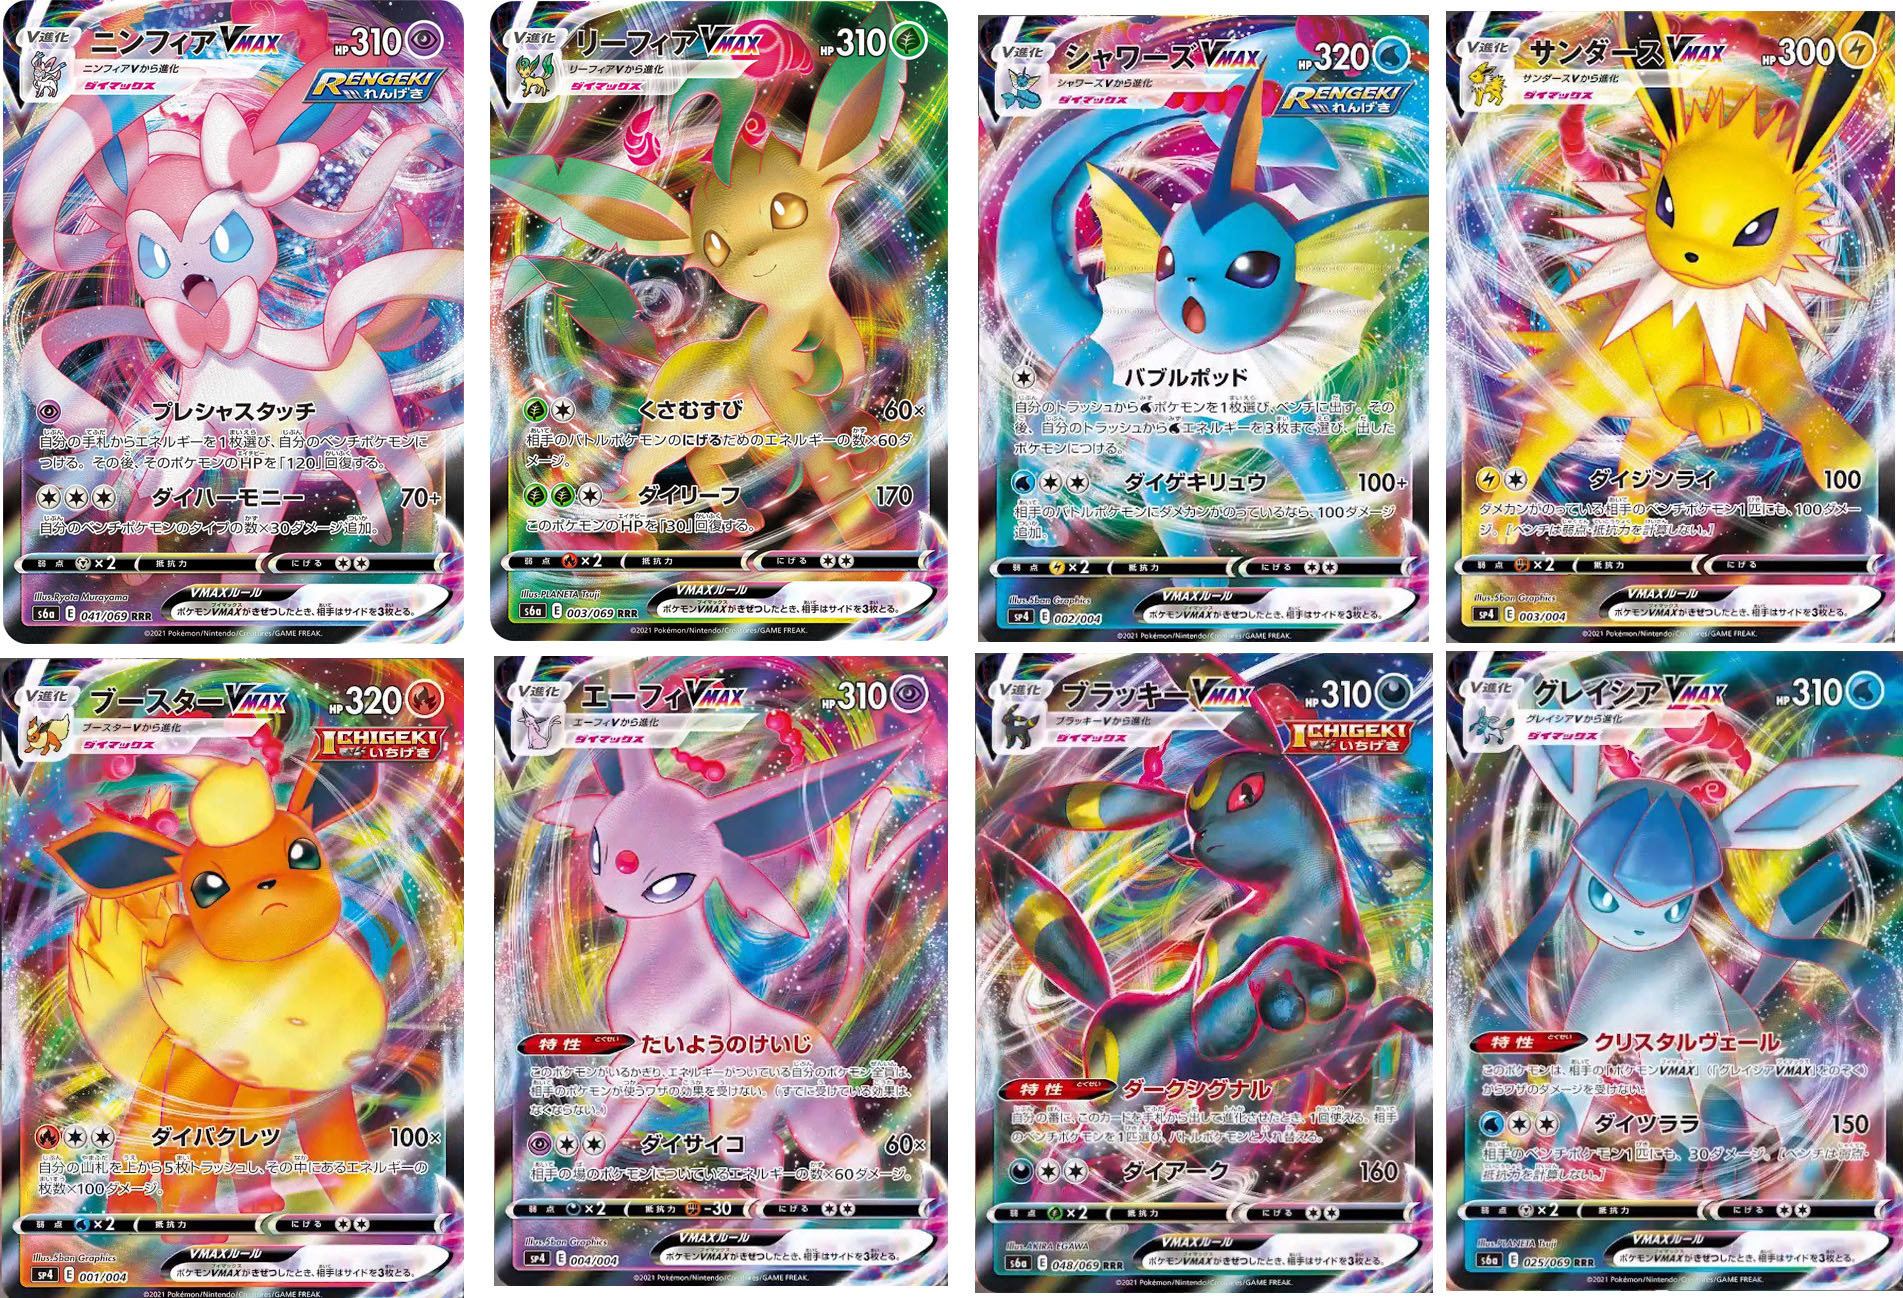 Pokemon TCG Eevee Heroes V and VMAX Cards